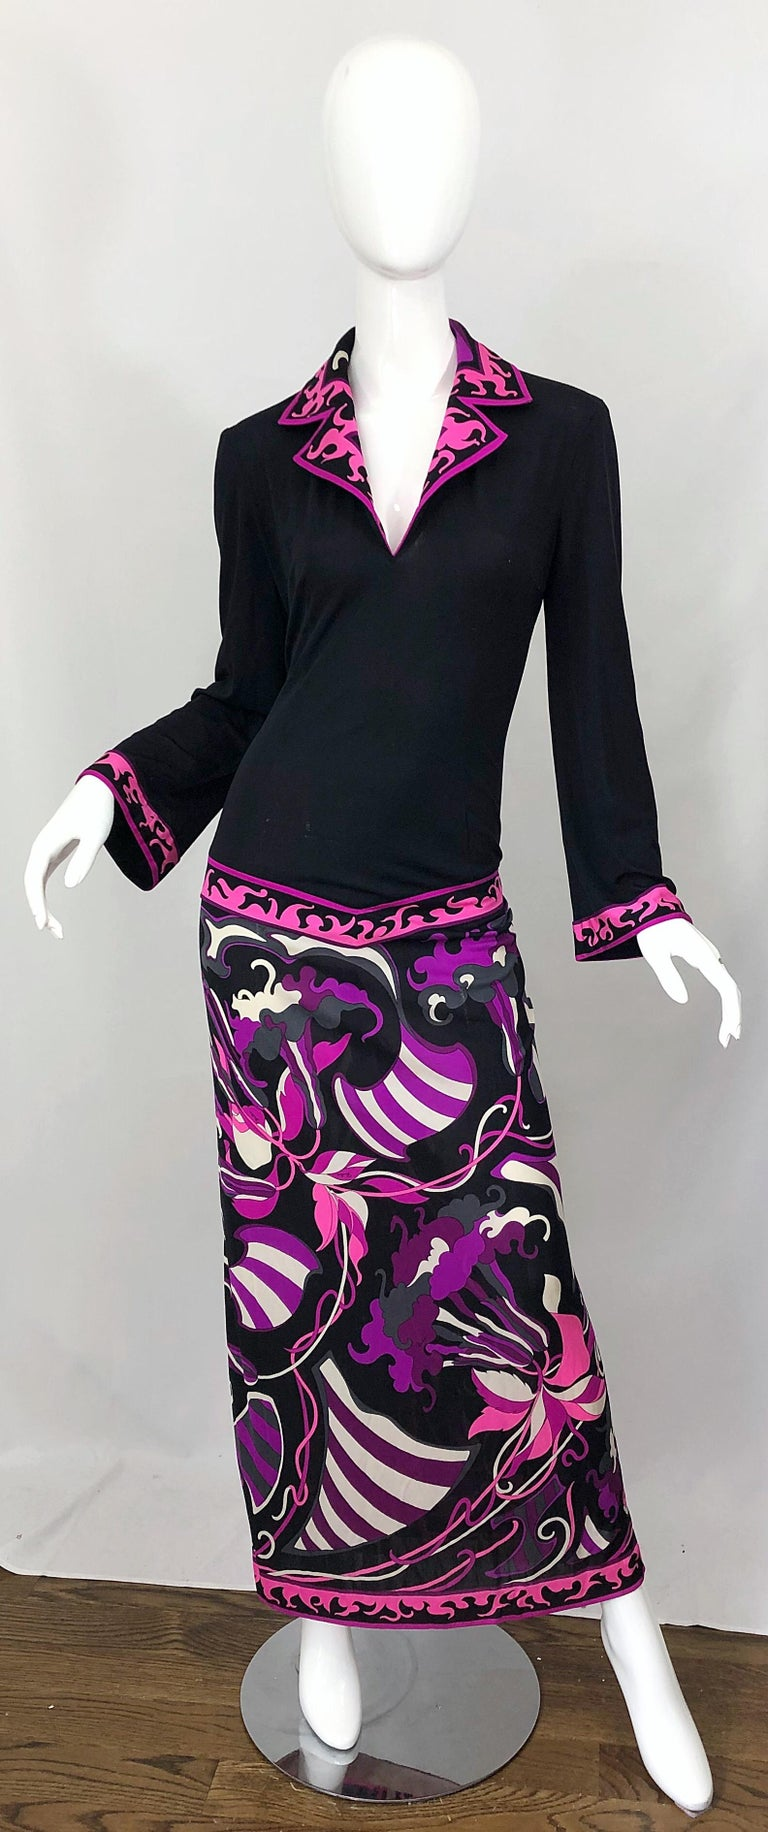 Emilio Pucci 1970s Silk Jersey Pink Purple Black Vintage 70s Maxi Dress For Sale 1